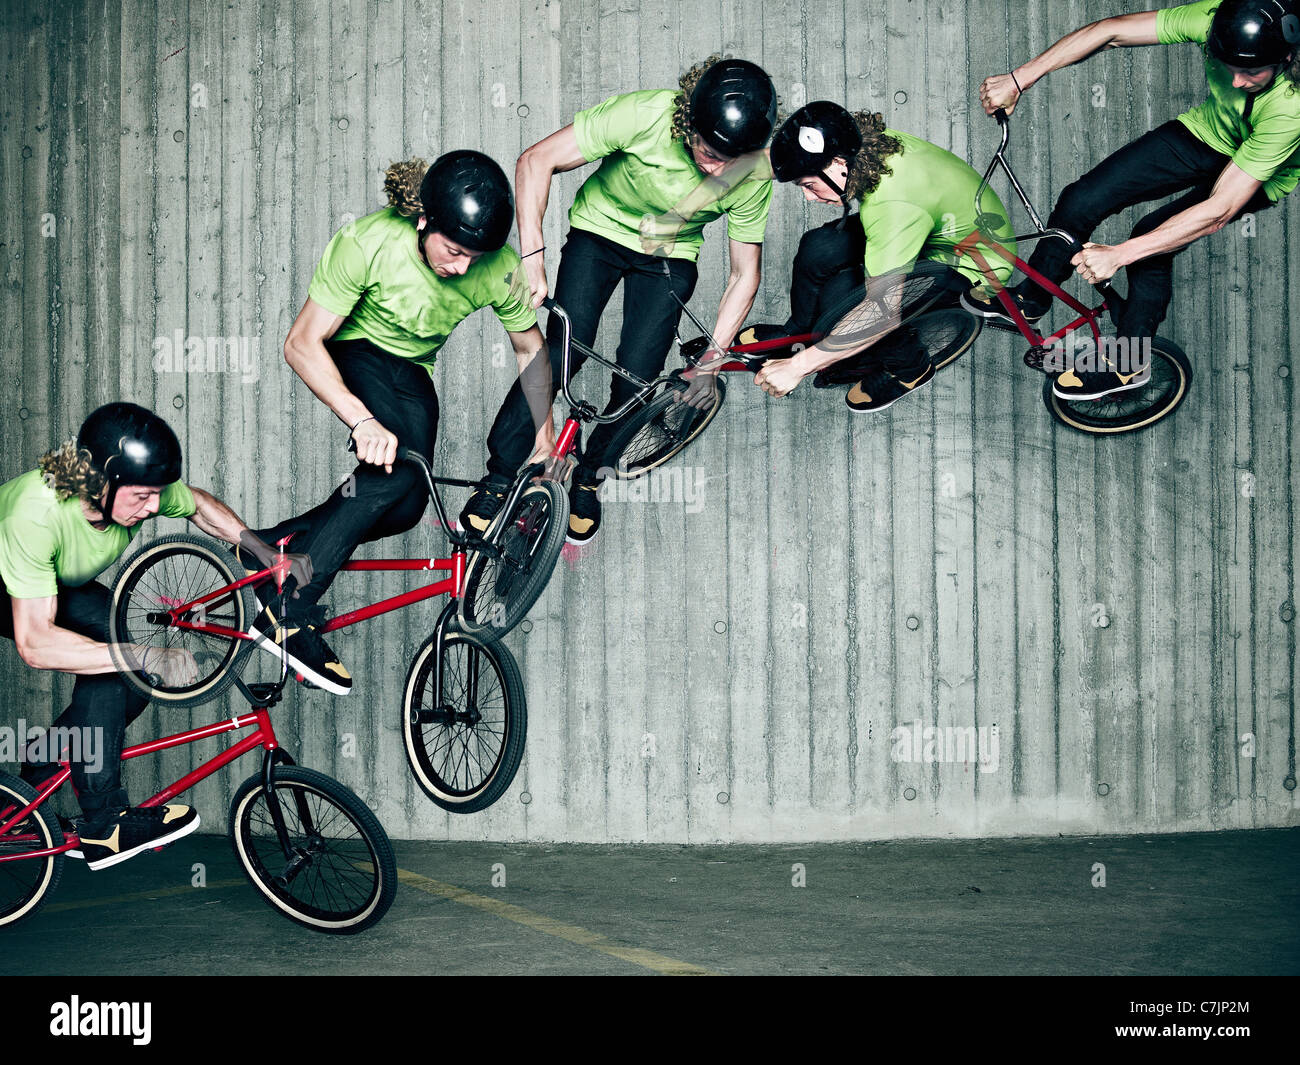 Multiple exposure of man doing bmx trick - Stock Image